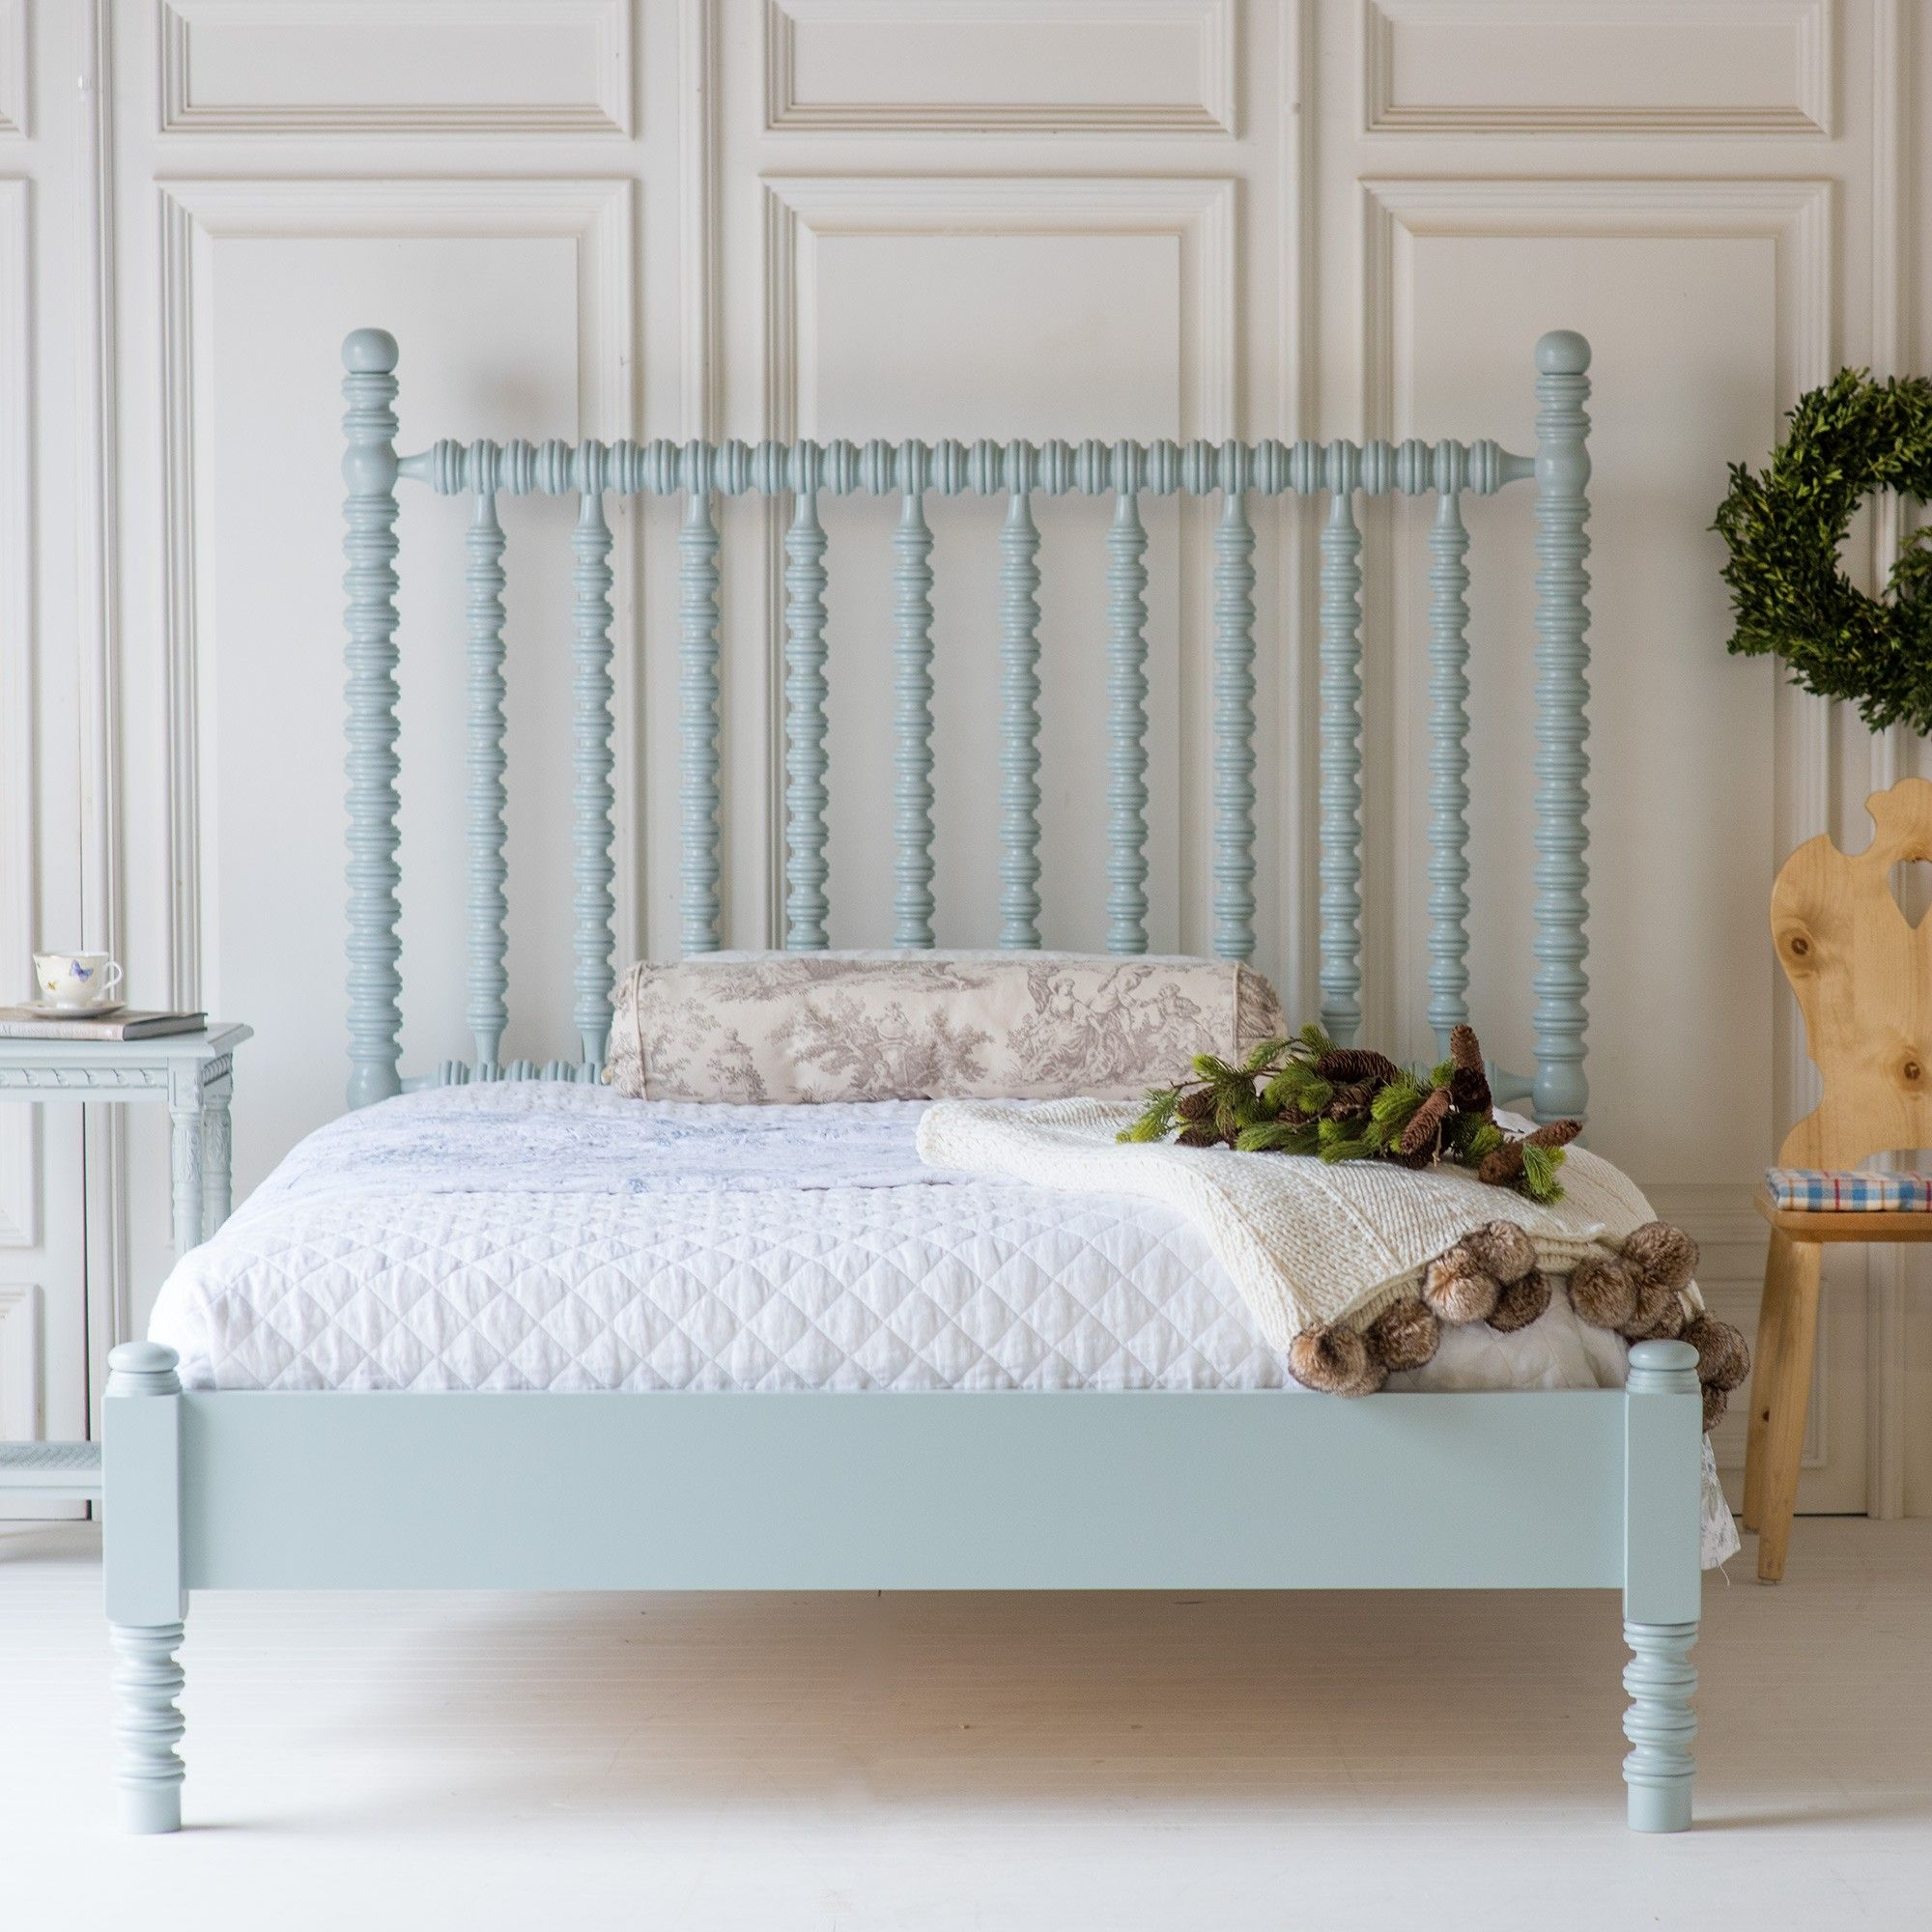 Our Harriet Spindle Bed With Low Footboard From The Beautiful Bed